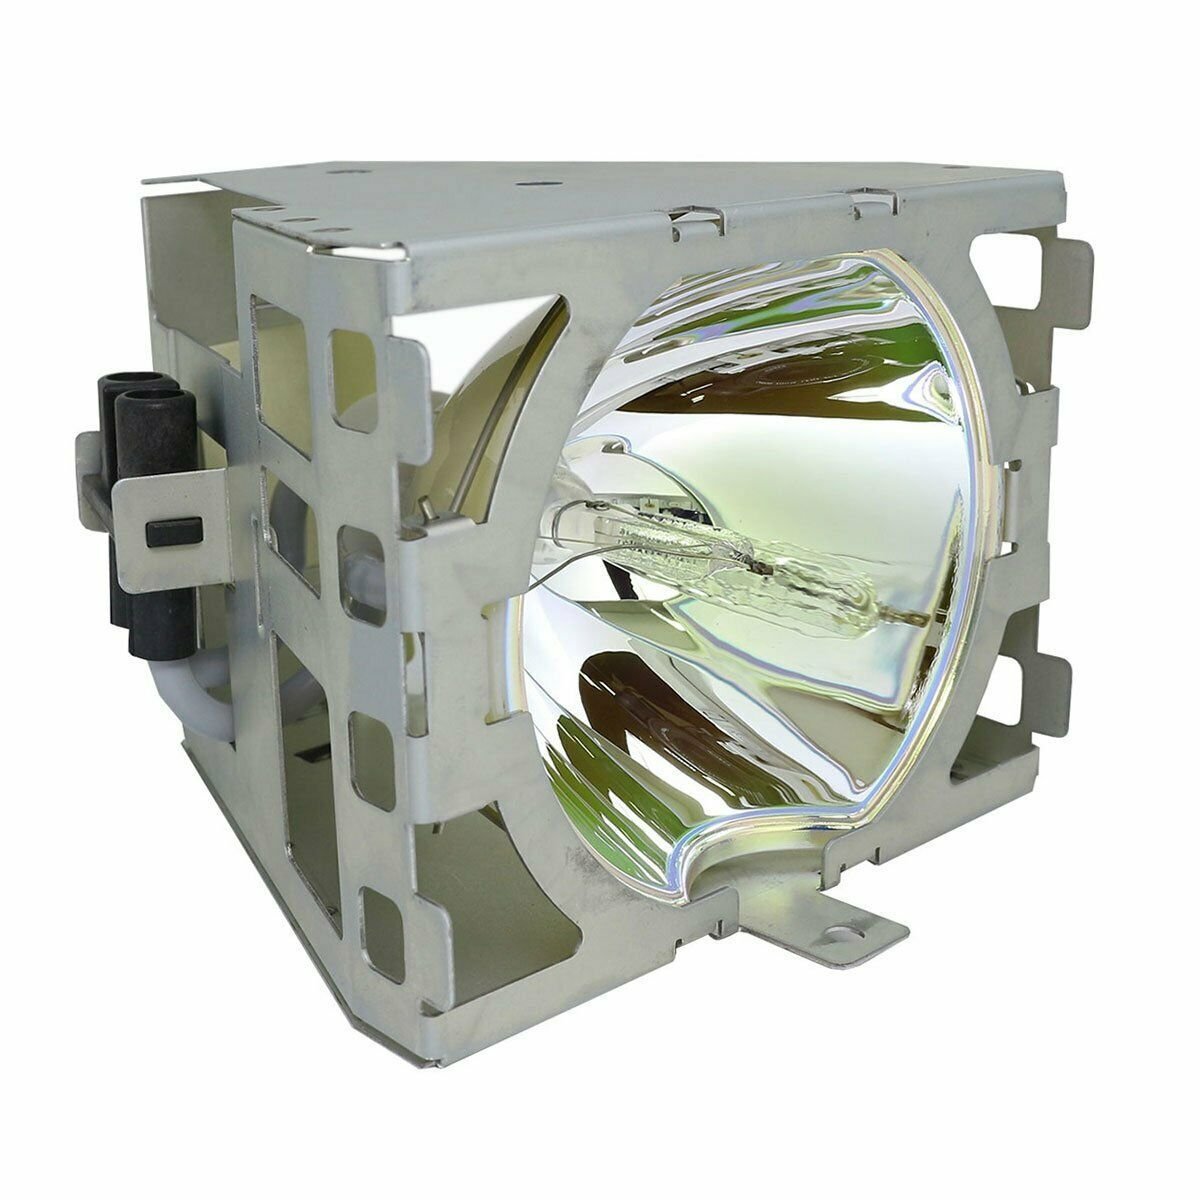 Primary image for Mitsubishi VLT-X100LP Ushio Projector Lamp Module